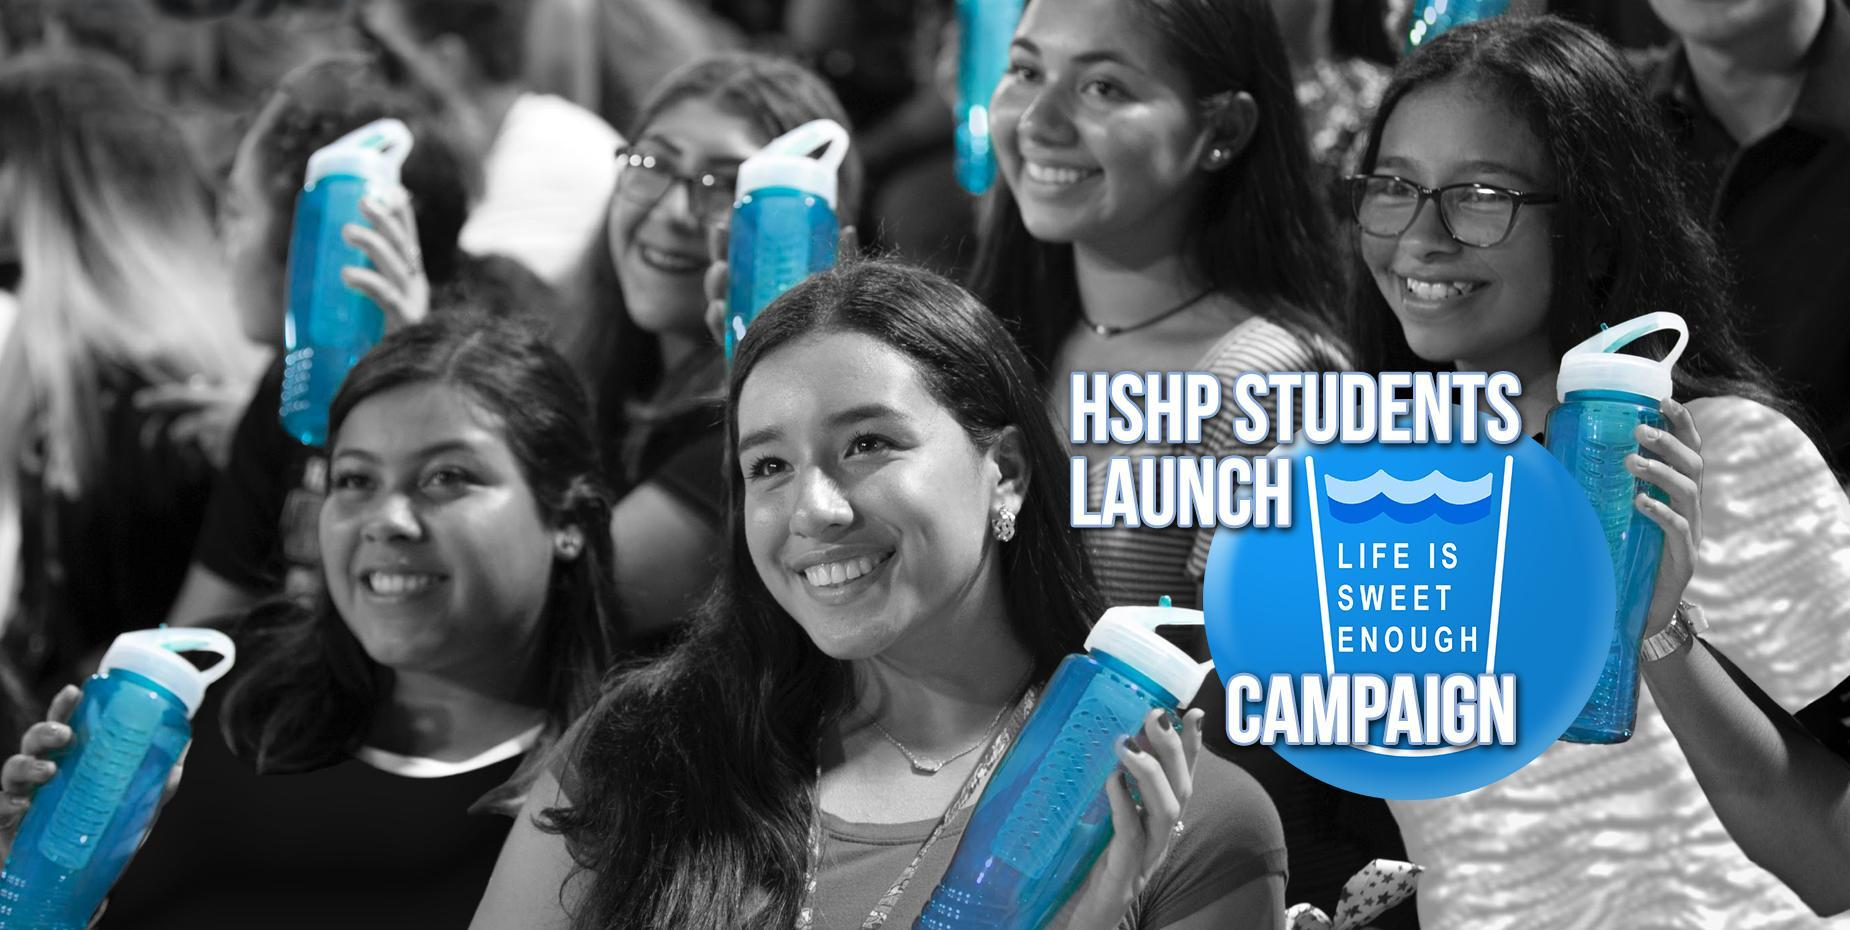 HSHP Students Launch Life is Sweet Enough Campaign